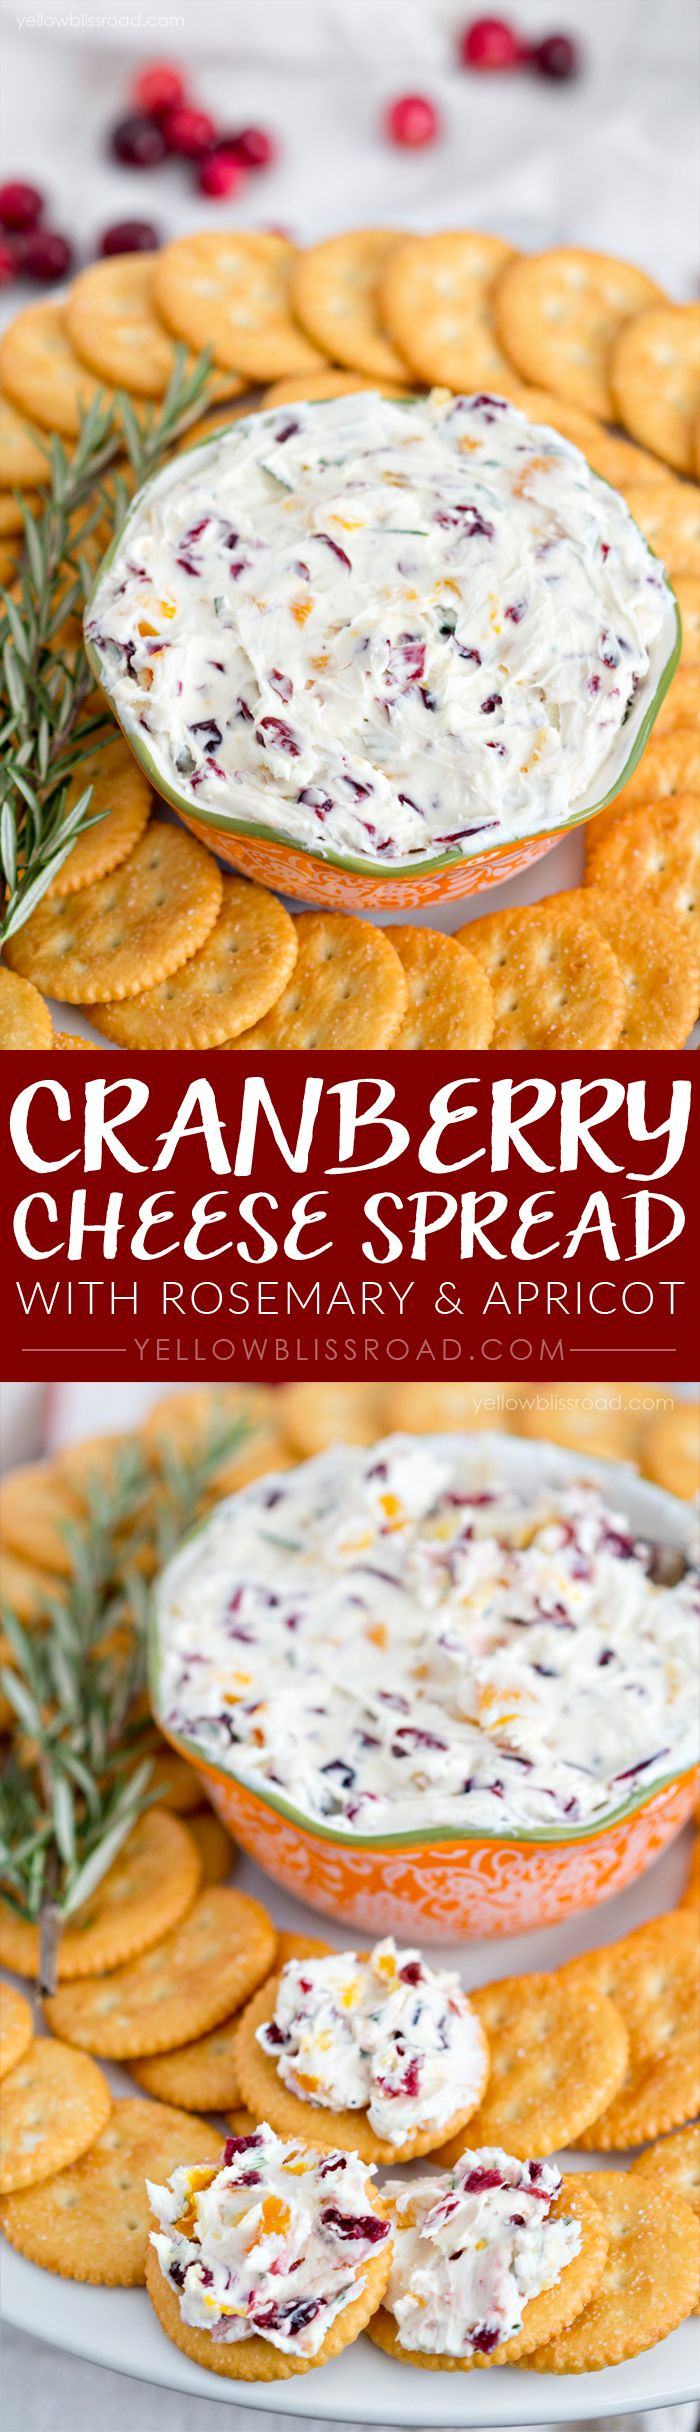 Holiday Cheese Spread recipe with dried cranberries & apricots, rosemary, and goat and cream cheeses - spread it on crackers or toasted bread